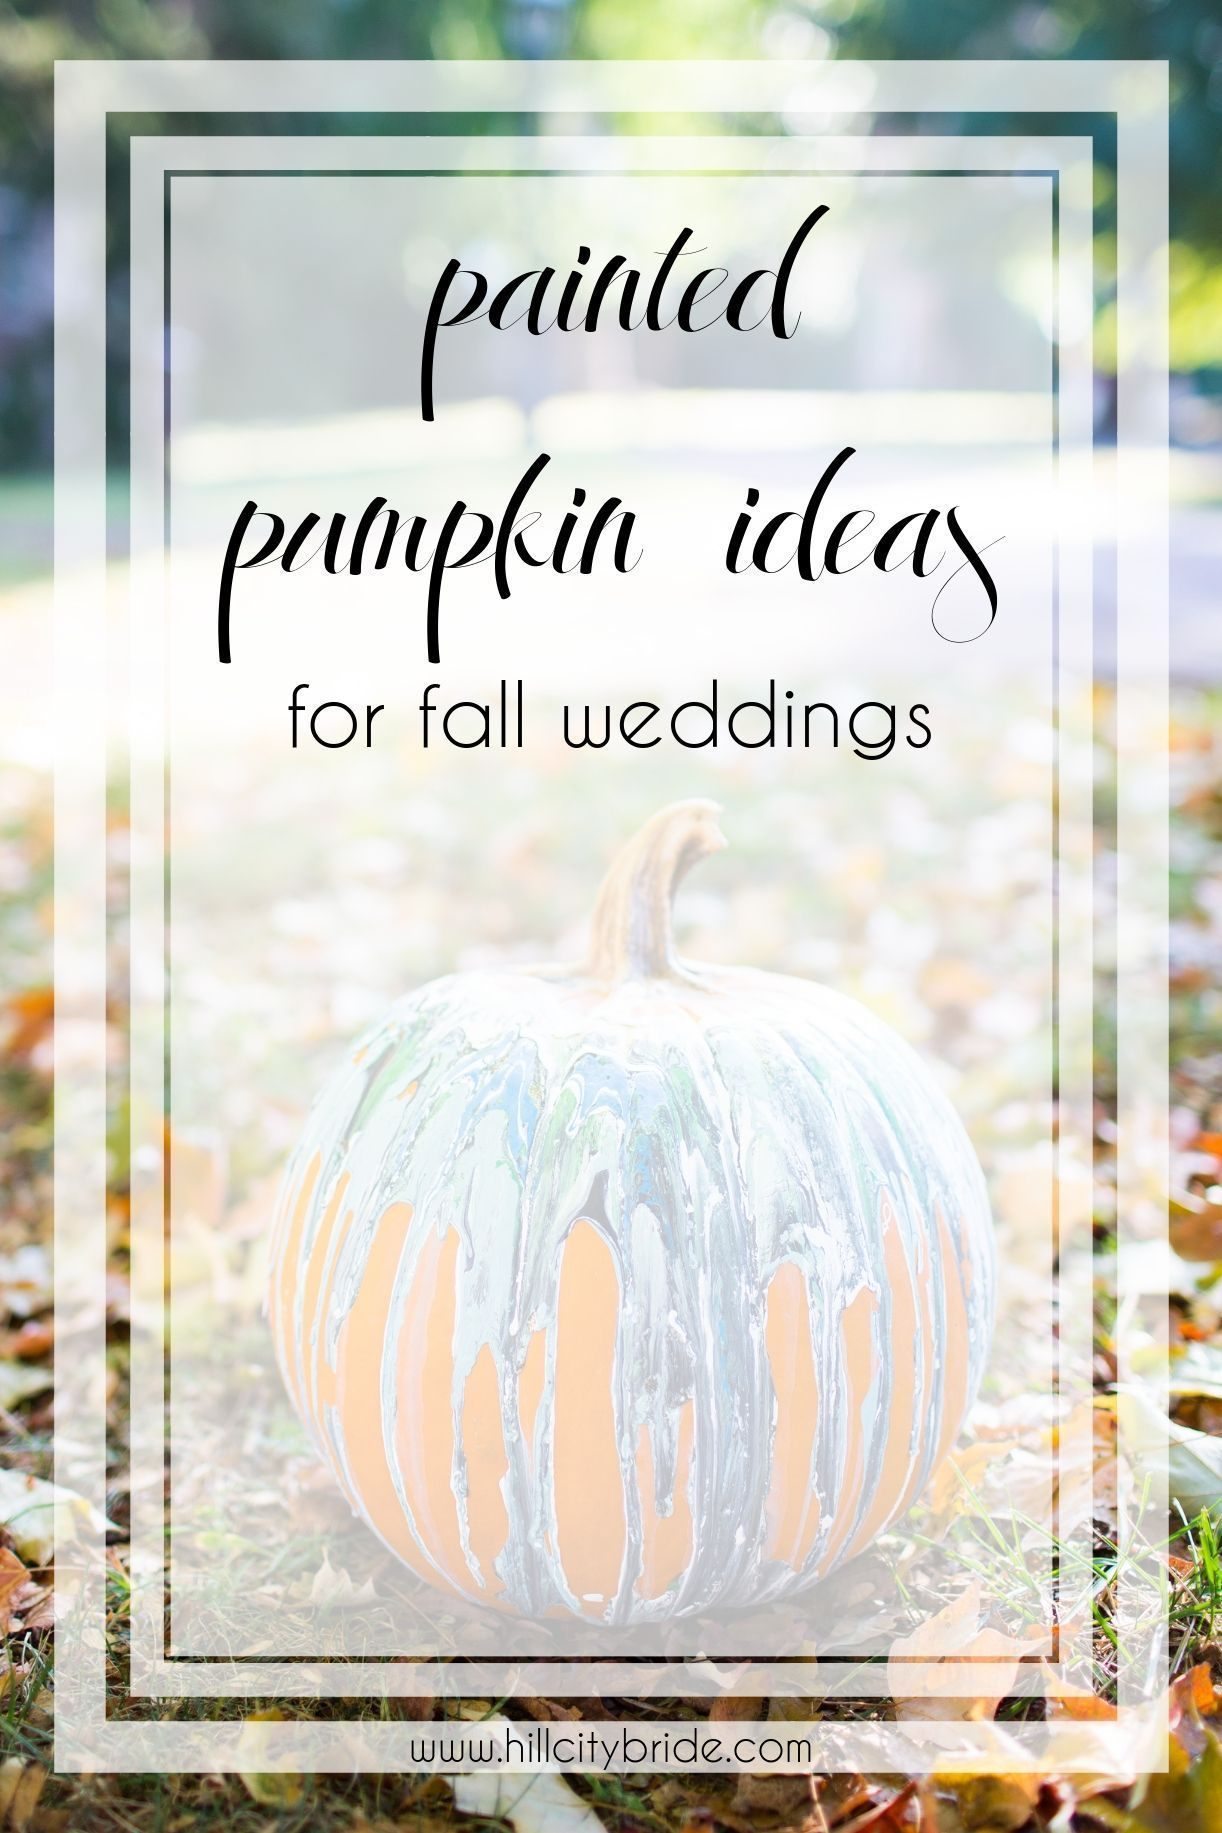 Painted Pumpkin Ideas for Fall Weddings #paintedpumpkinideas Are you having a fall wedding or hosting a pumpkin painting party? Be sure to check out one of our favorite painted pumpkin ides for fall weddings! #paintedpumpkinideas Painted Pumpkin Ideas for Fall Weddings #paintedpumpkinideas Are you having a fall wedding or hosting a pumpkin painting party? Be sure to check out one of our favorite painted pumpkin ides for fall weddings! #paintedpumpkinideas Painted Pumpkin Ideas for Fall Weddings #paintedpumpkinideas